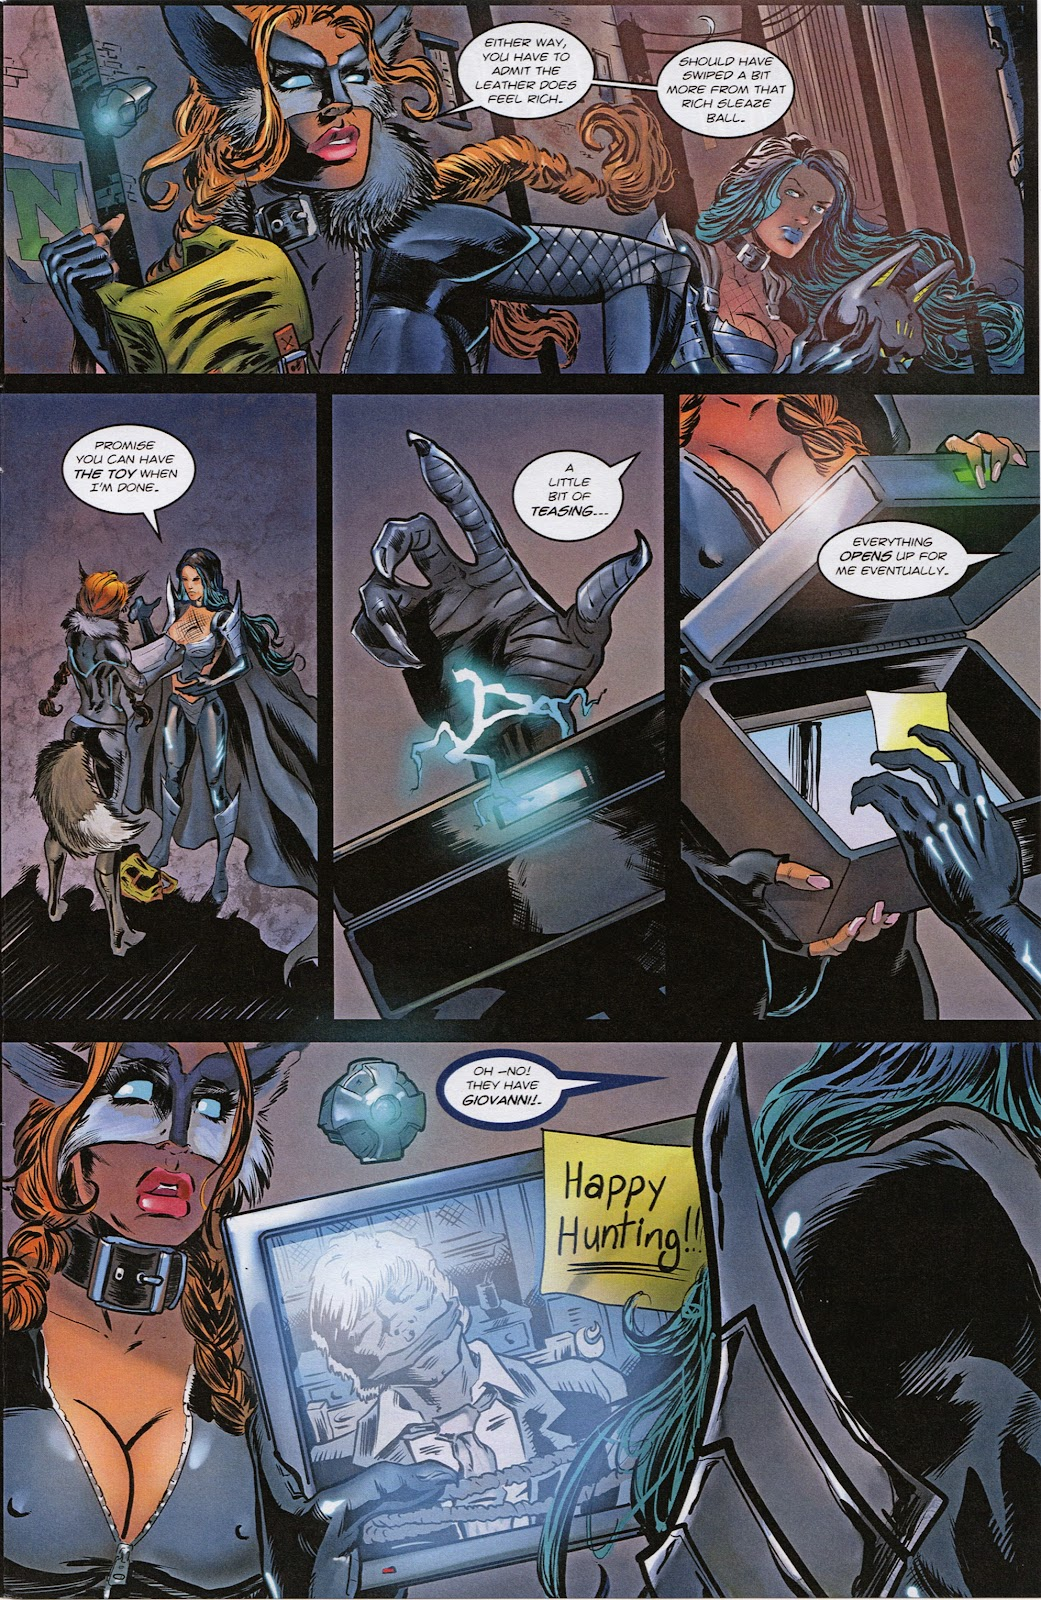 Read online Fox and Hound comic -  Issue #2 - 25